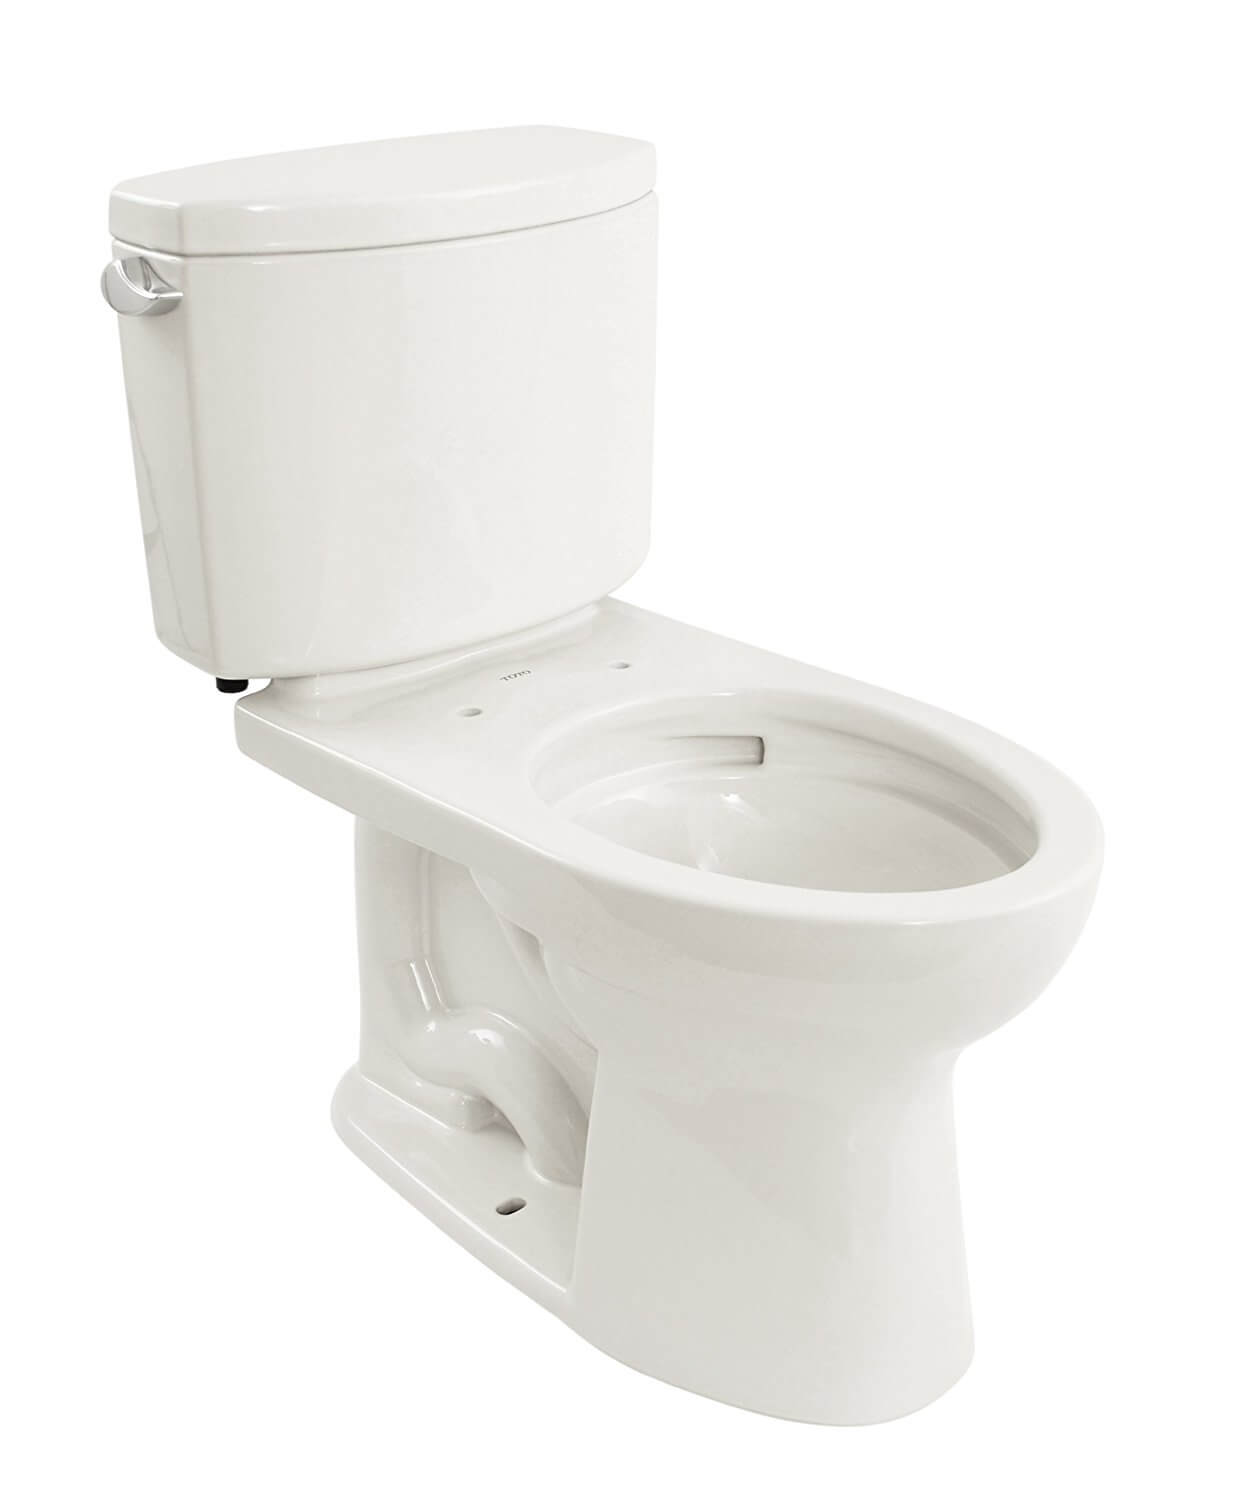 Types of Toilets: All The Different Water Closets in The Industry